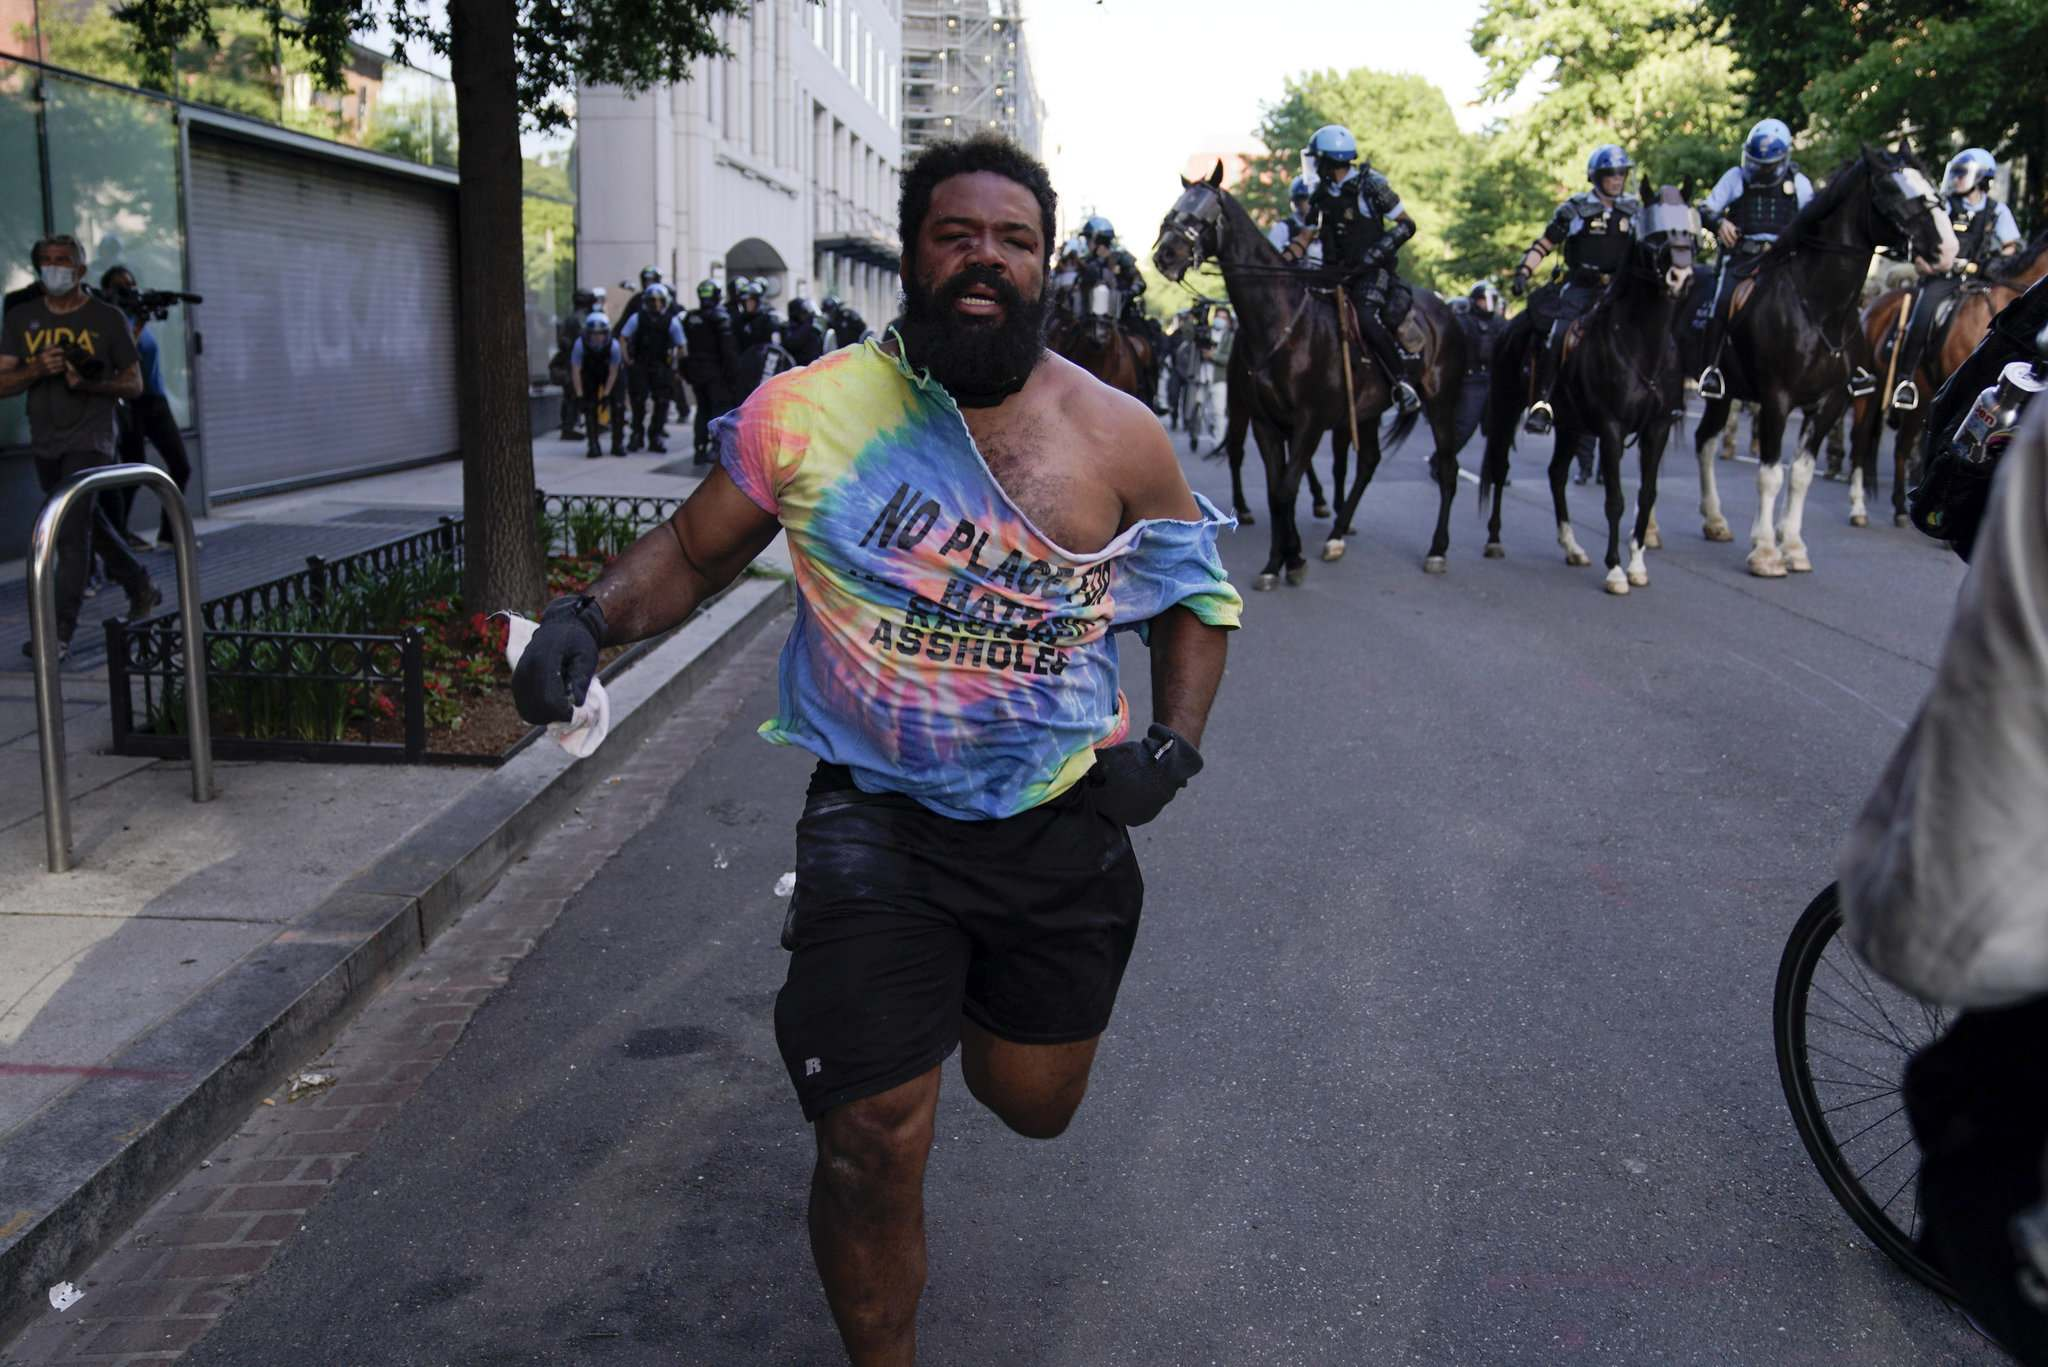 A demonstrator and others who gathered to protest the death of Floyd Monday move away from police officers on horses near the White House in Washington.